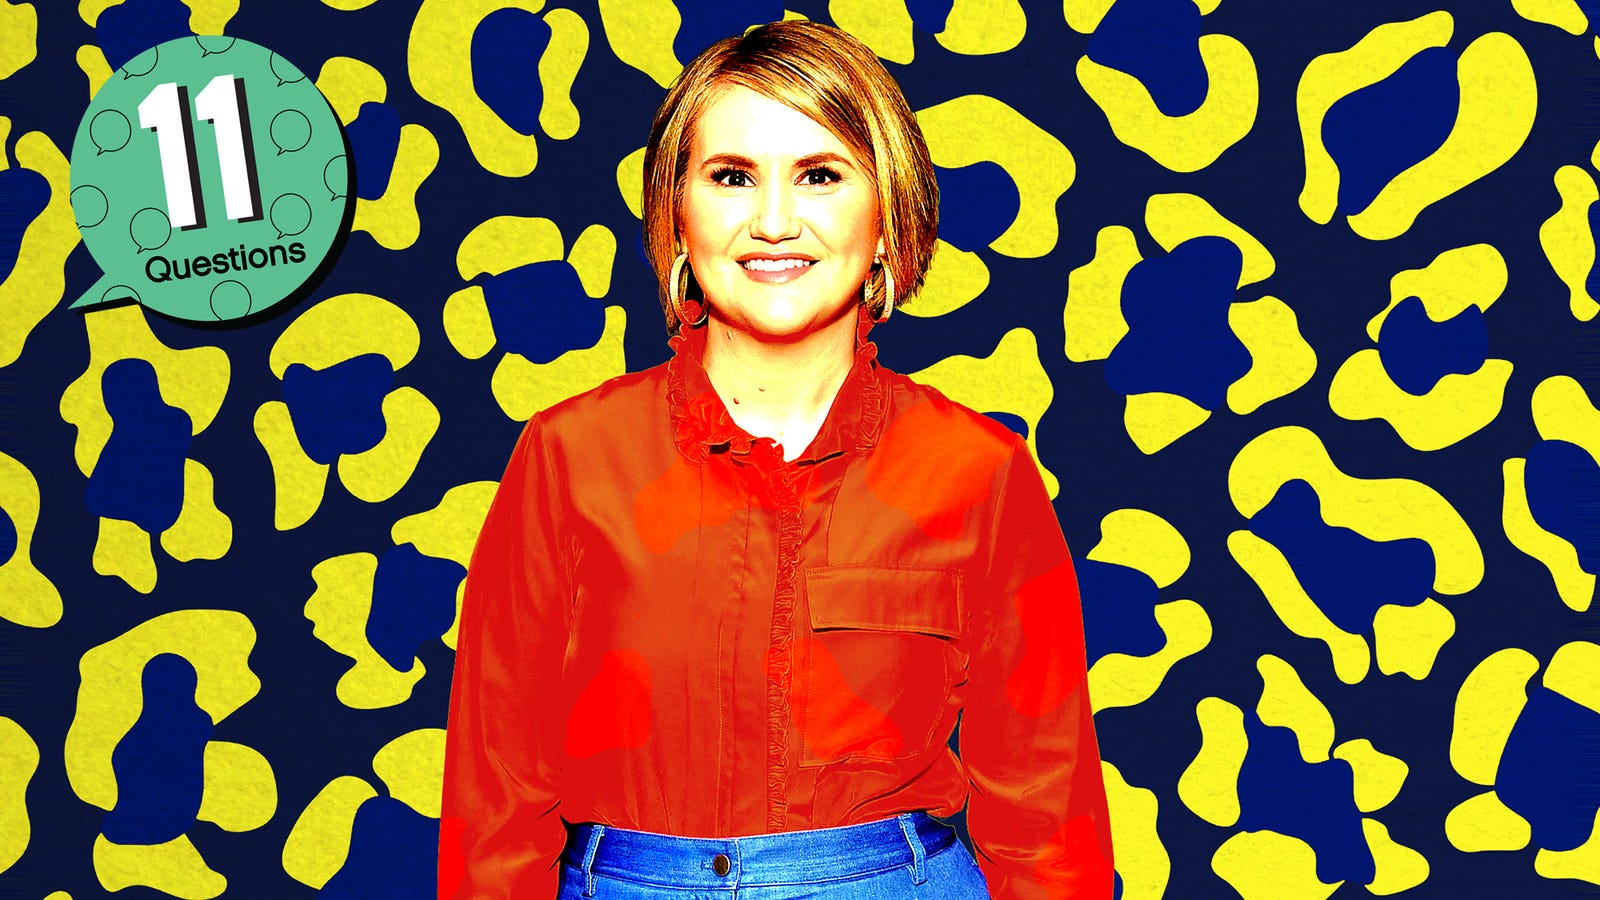 Yes, that was Jillian Bell on the jumbotron at a New Kids On The Block show